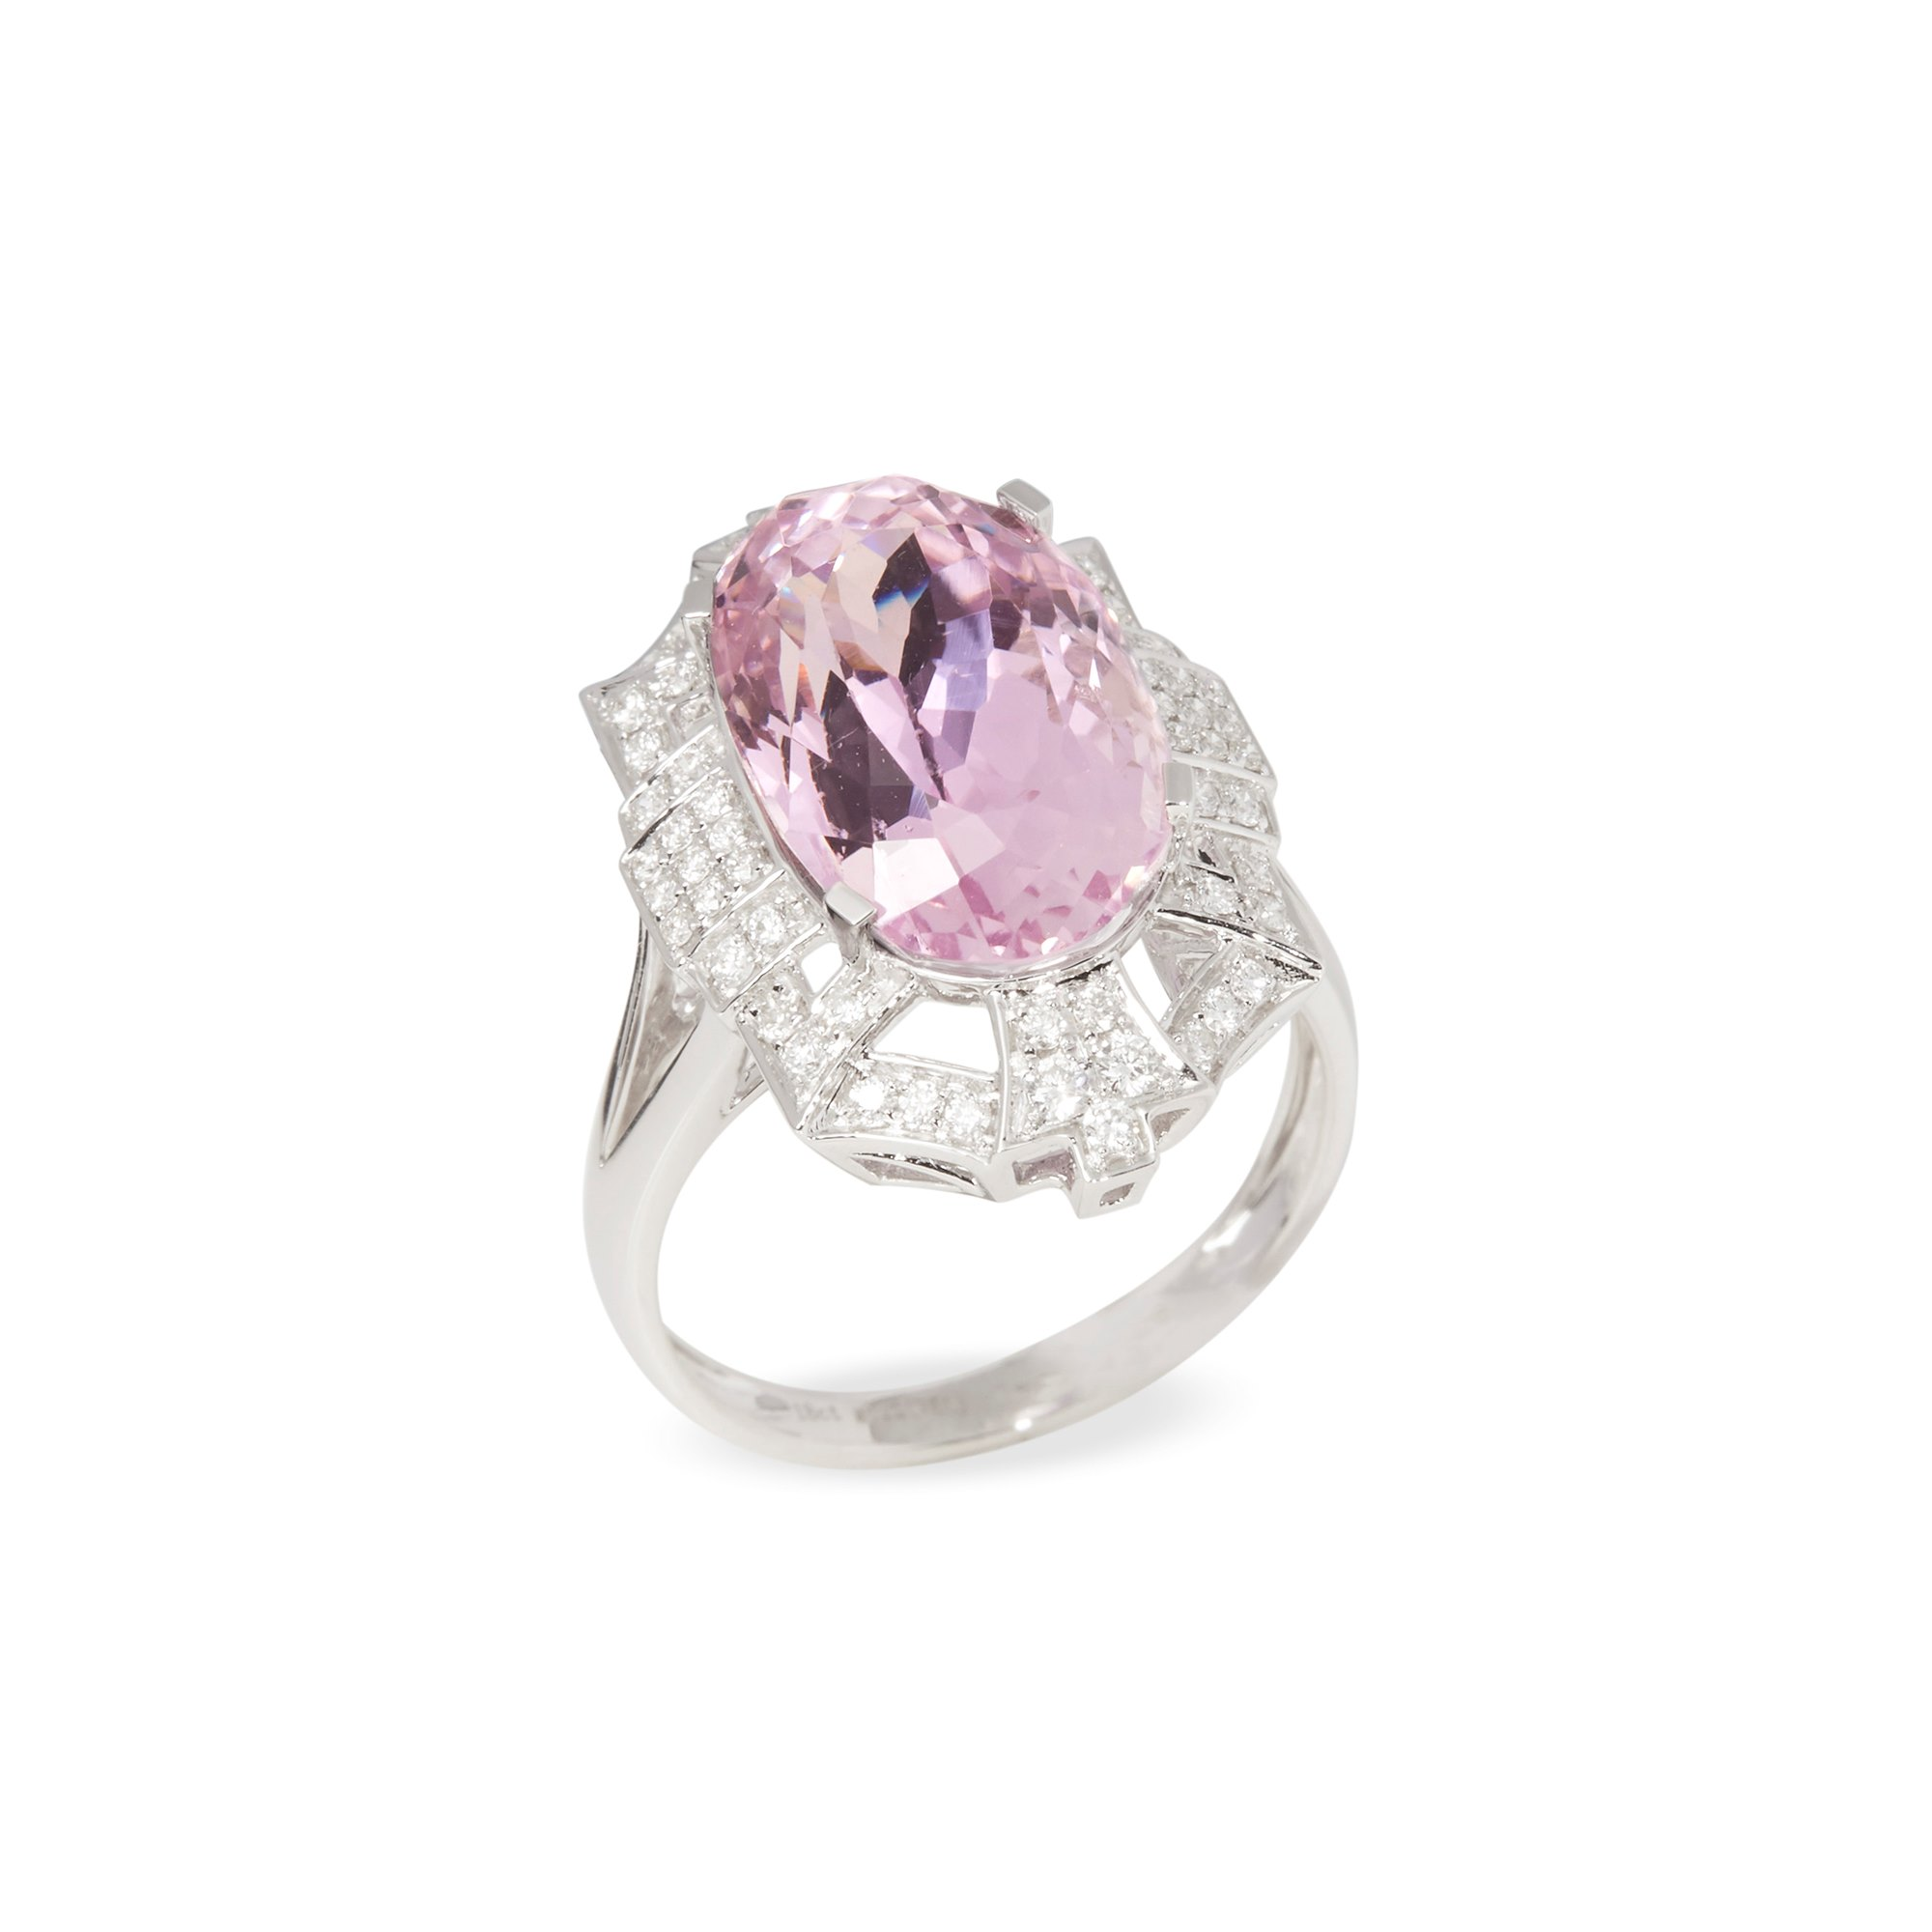 David Jerome Certified 9.91ct Untreated Oval Cut Kunzite and Diamond Ring